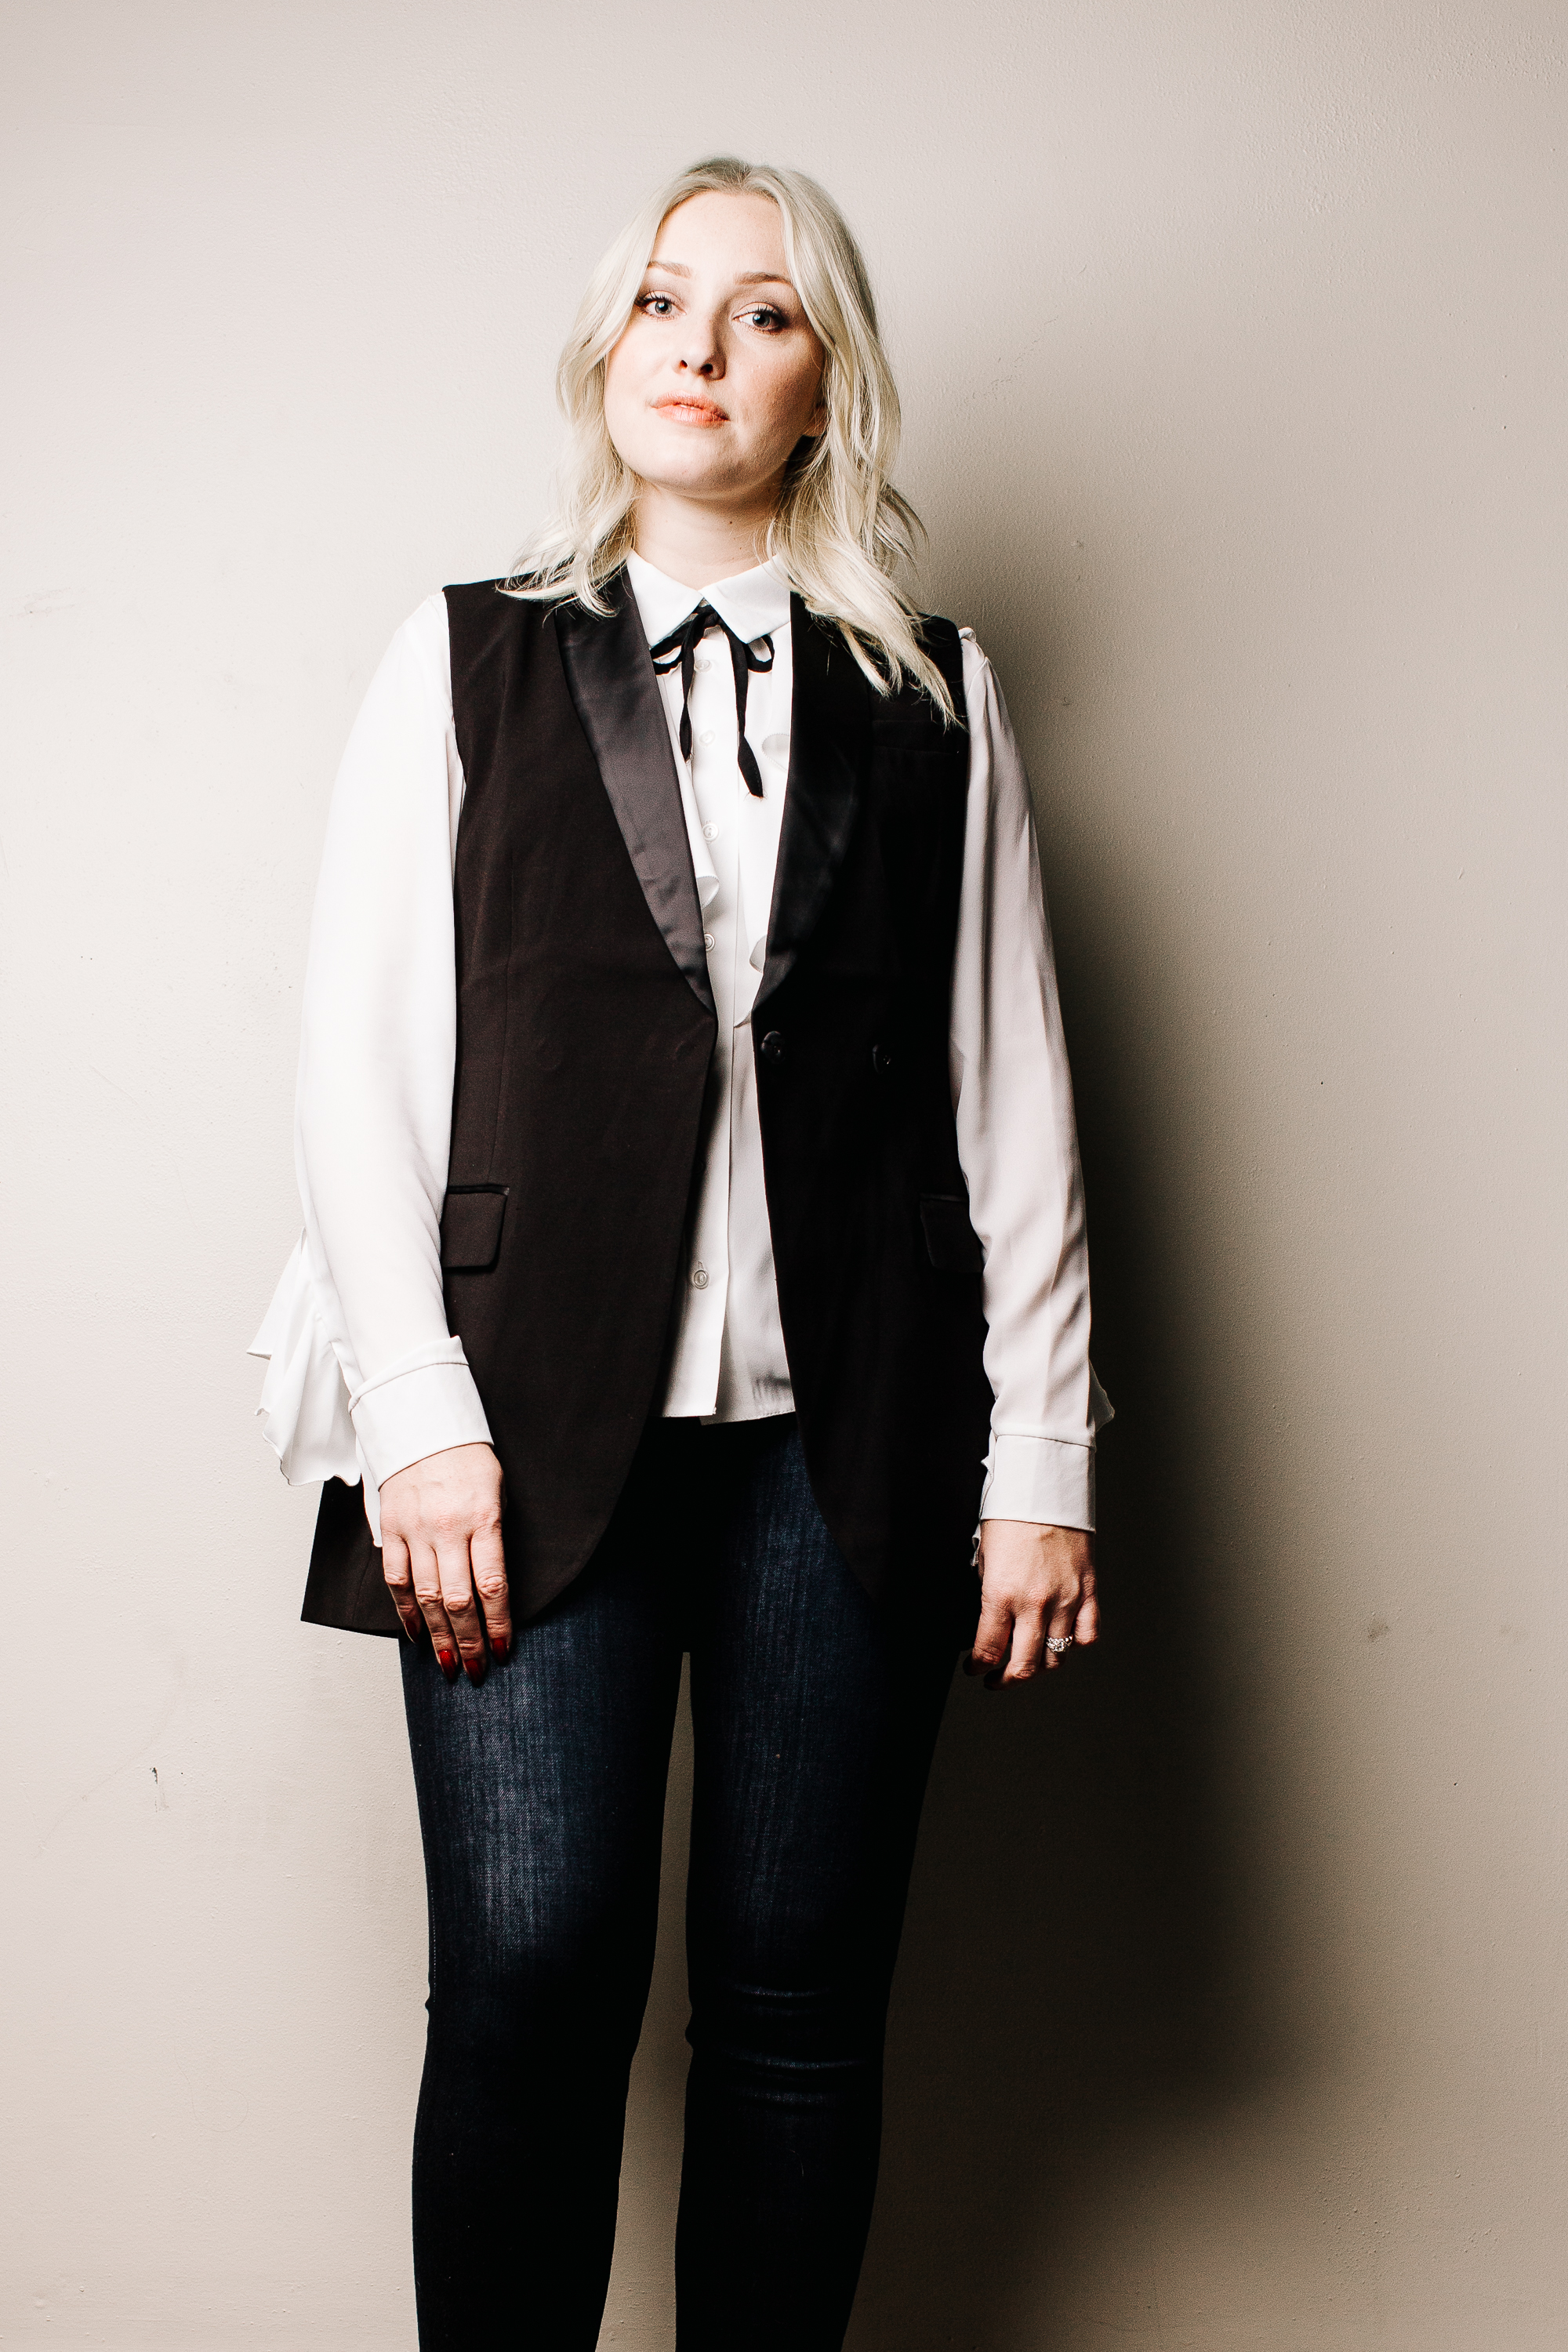 trish-taylor-tuxedo-vest-with-white-blouse-full